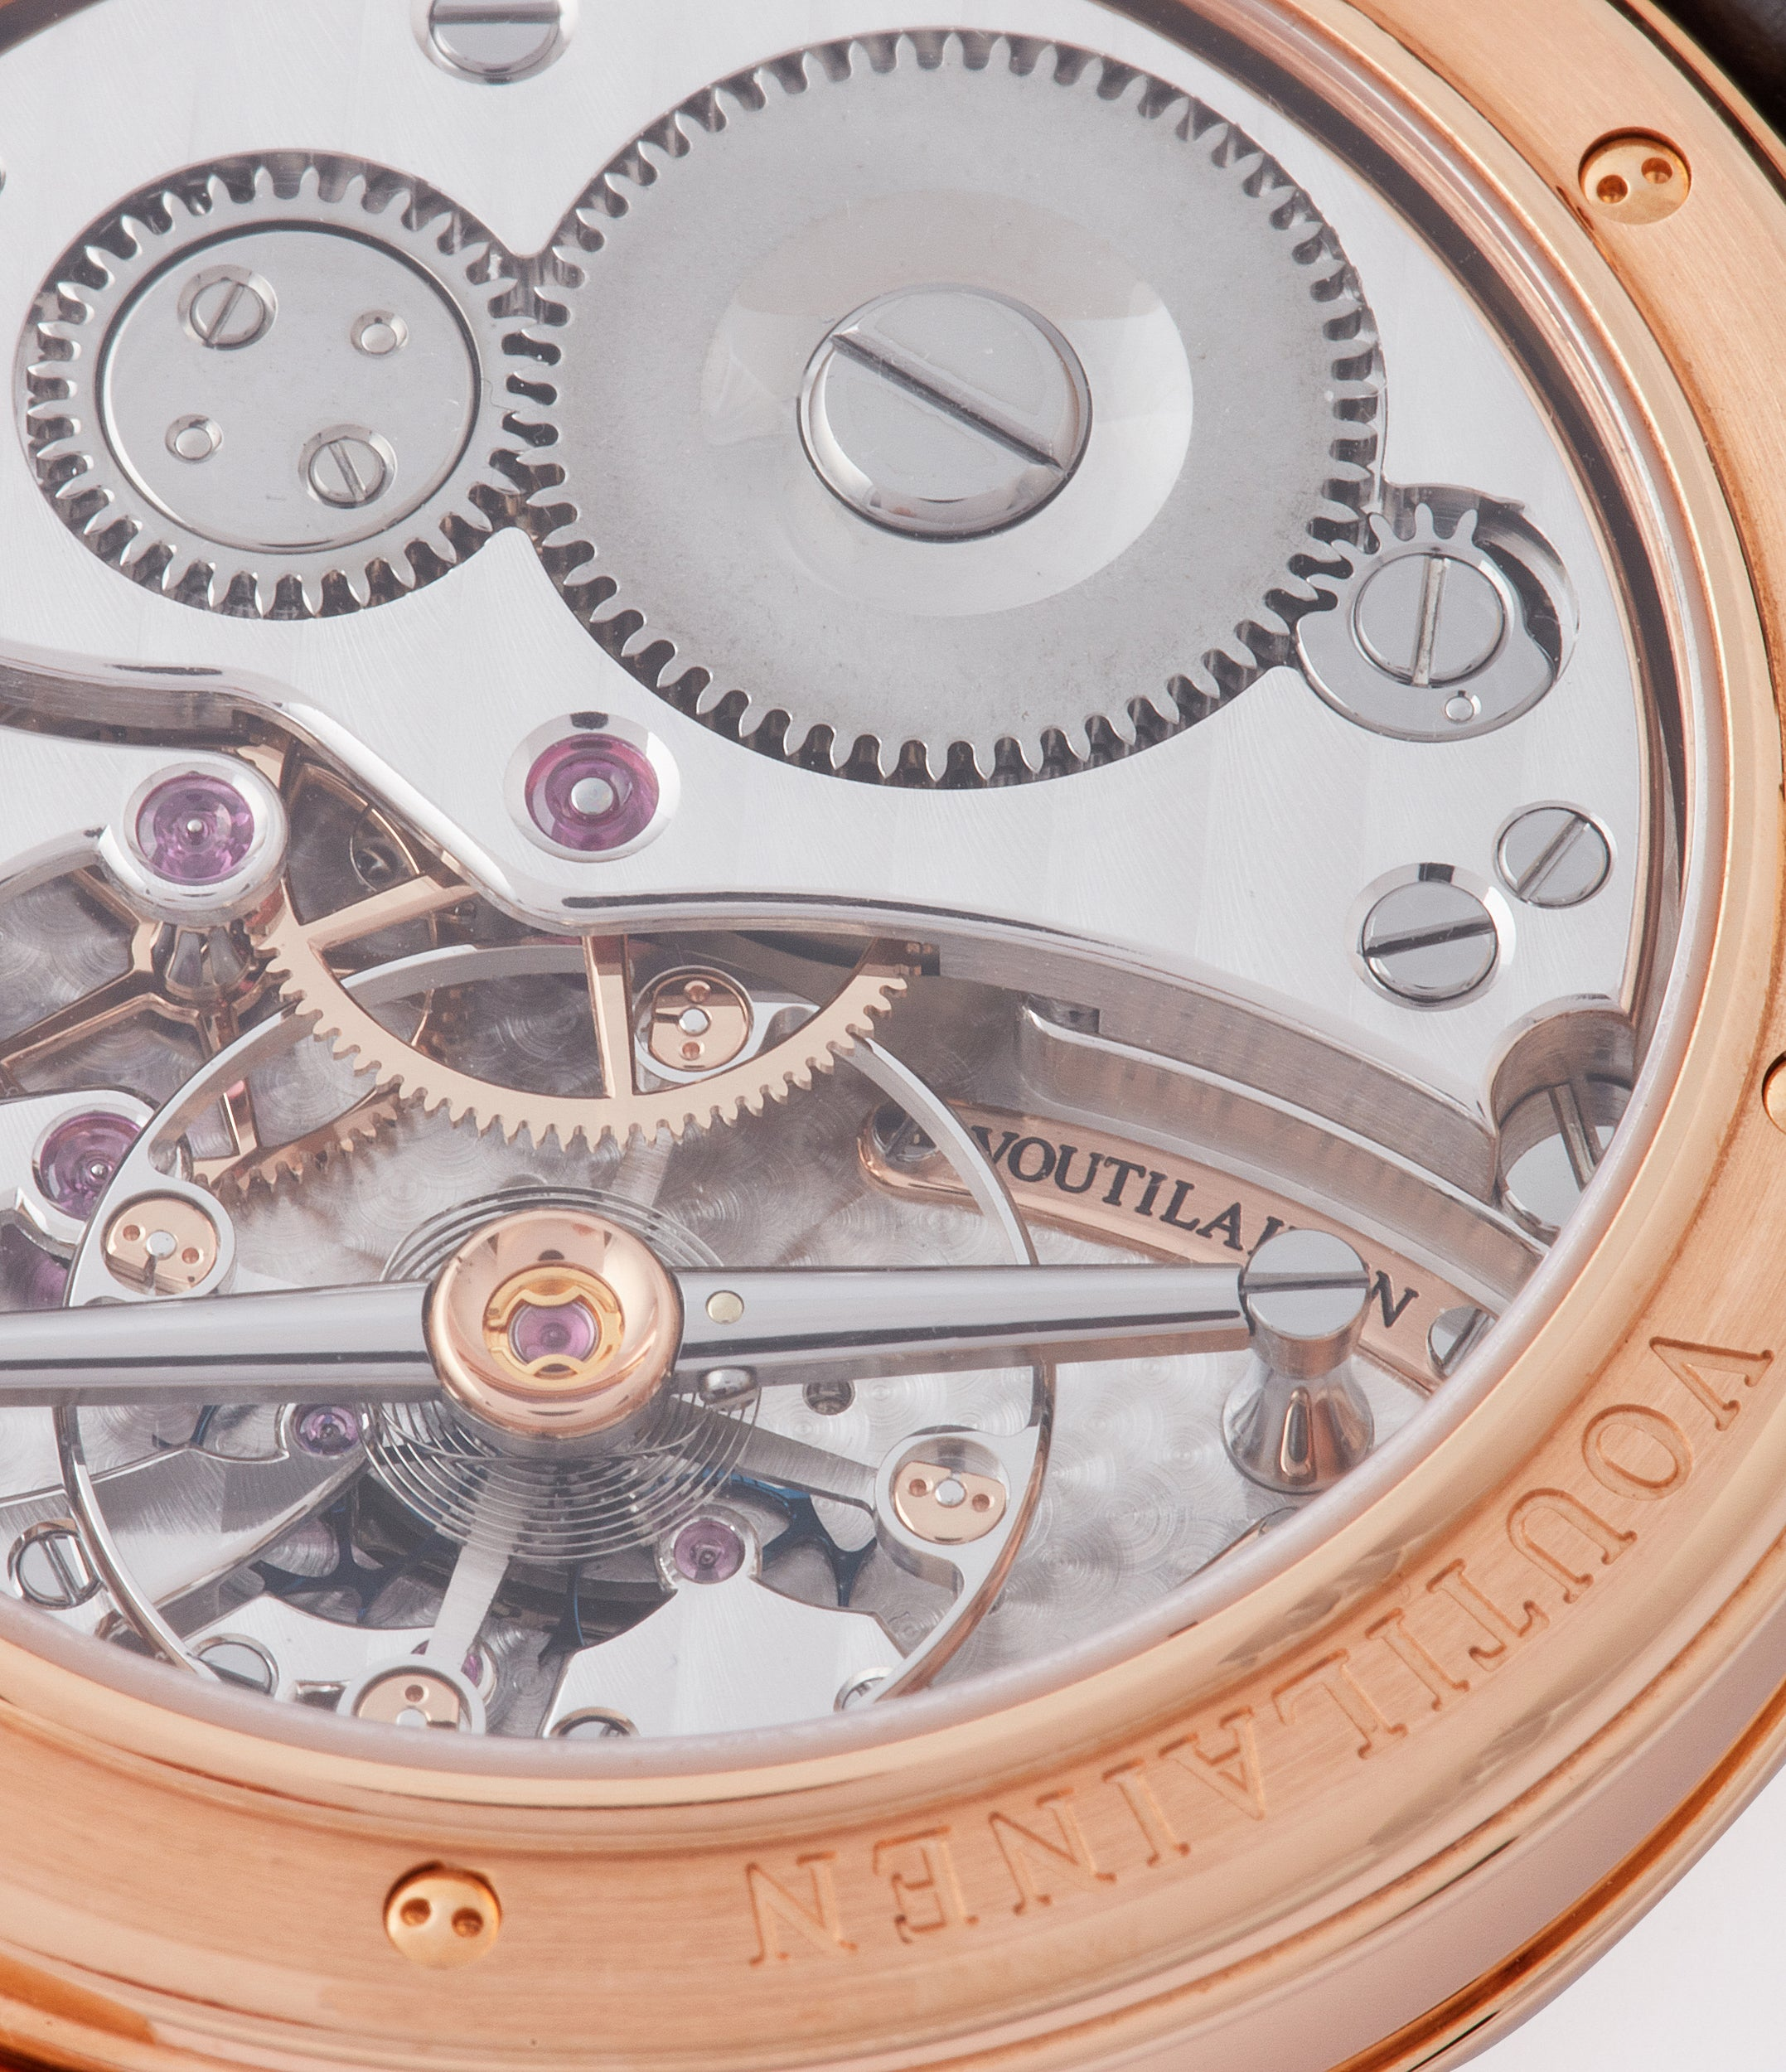 Cal. 28 manual-winding Kari Voutilainen Vingt-8 rose gold dress watch with brown guilloche dial for sale at A Collected Man London approved re-seller of preowned Voutilainen watches